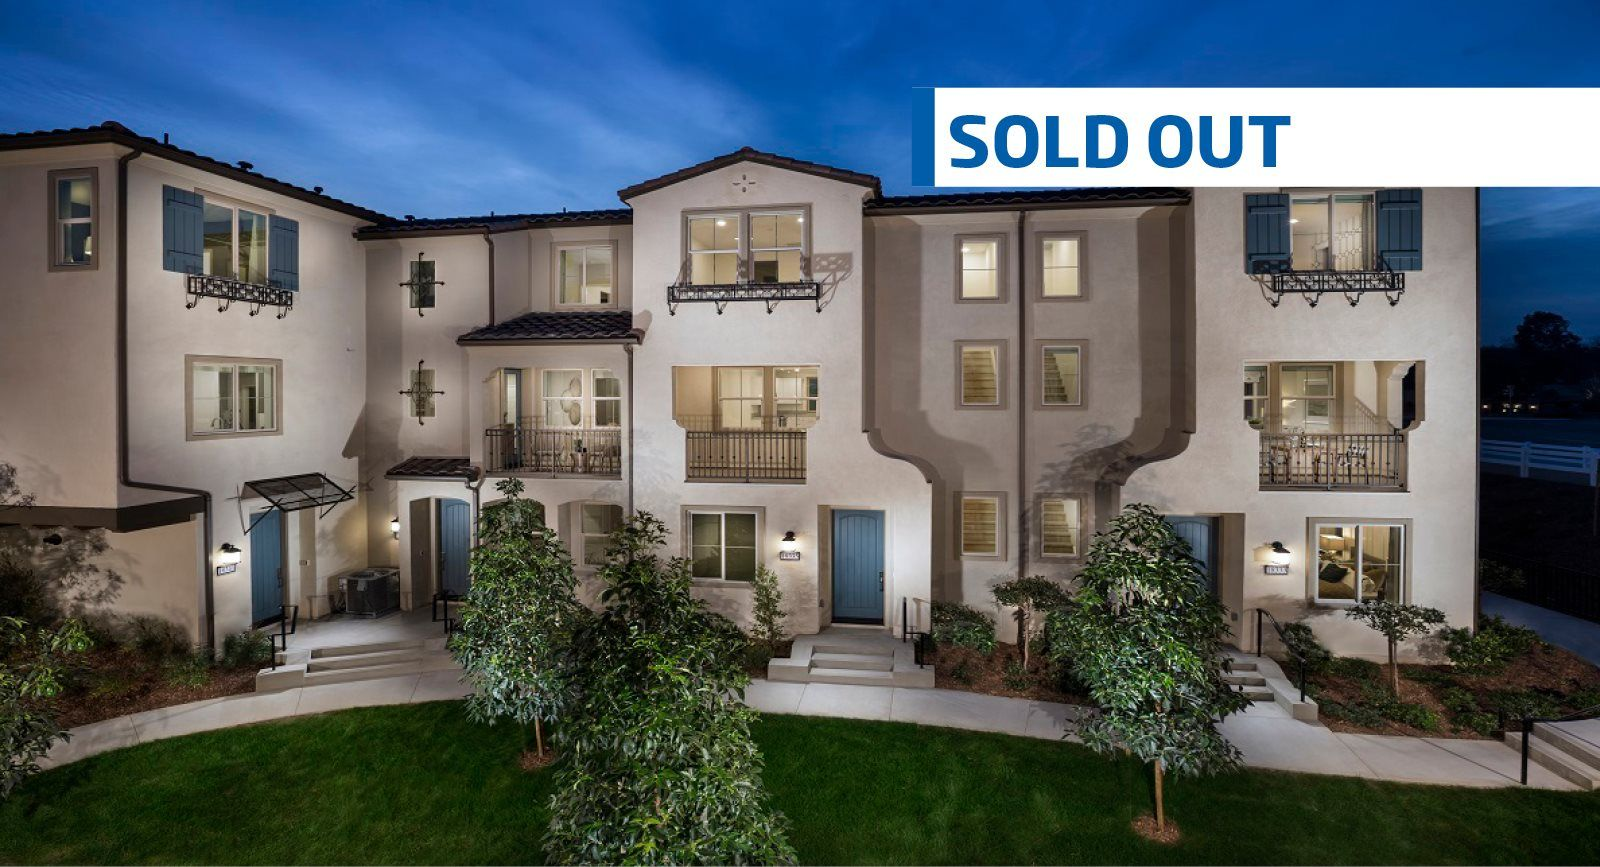 Residence One Sold Out